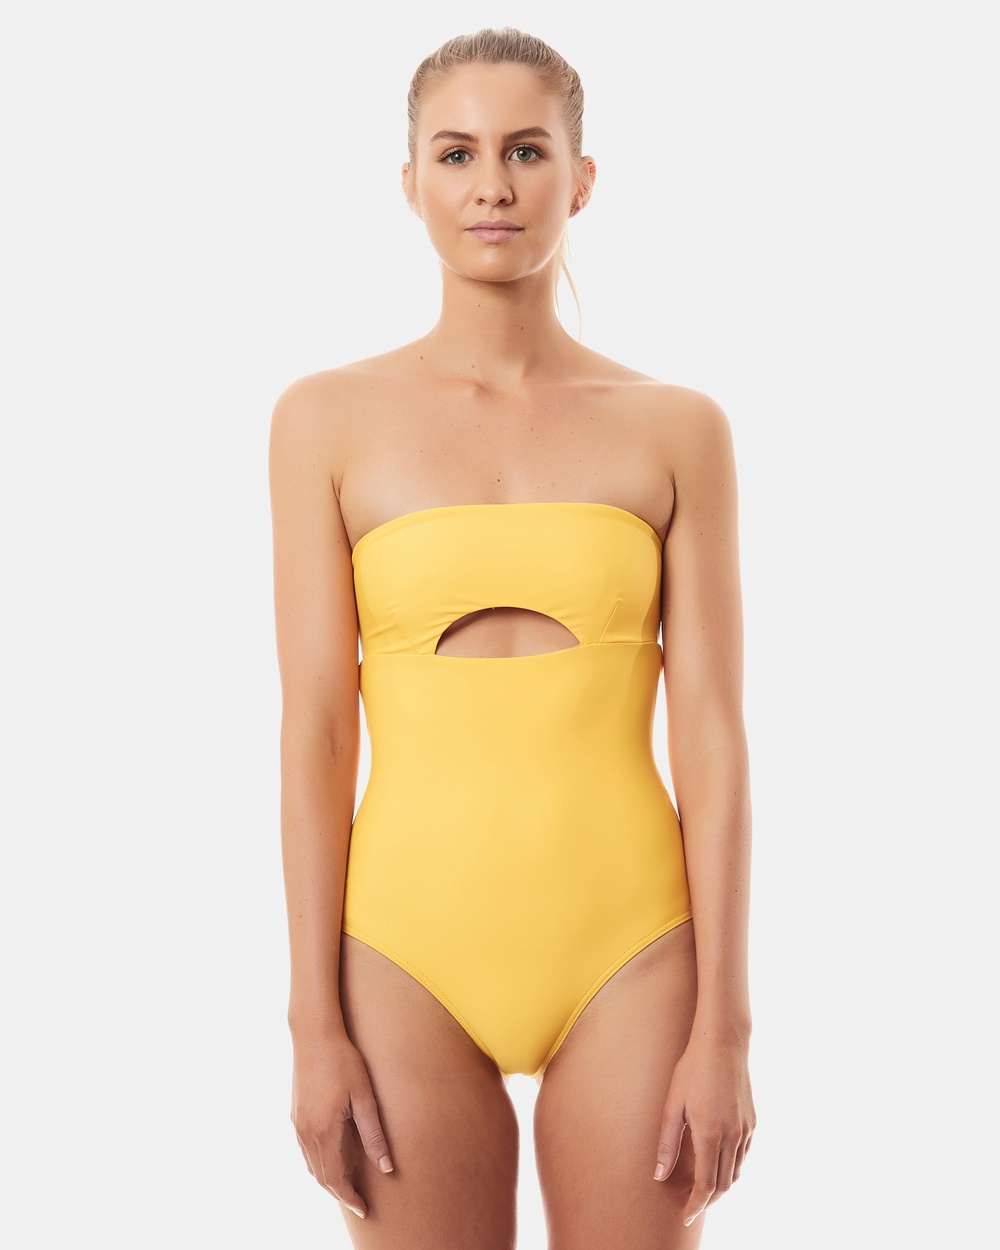 Seapia Puerto One Piece One-Piece / Swimsuit Yellow Puerto One Piece